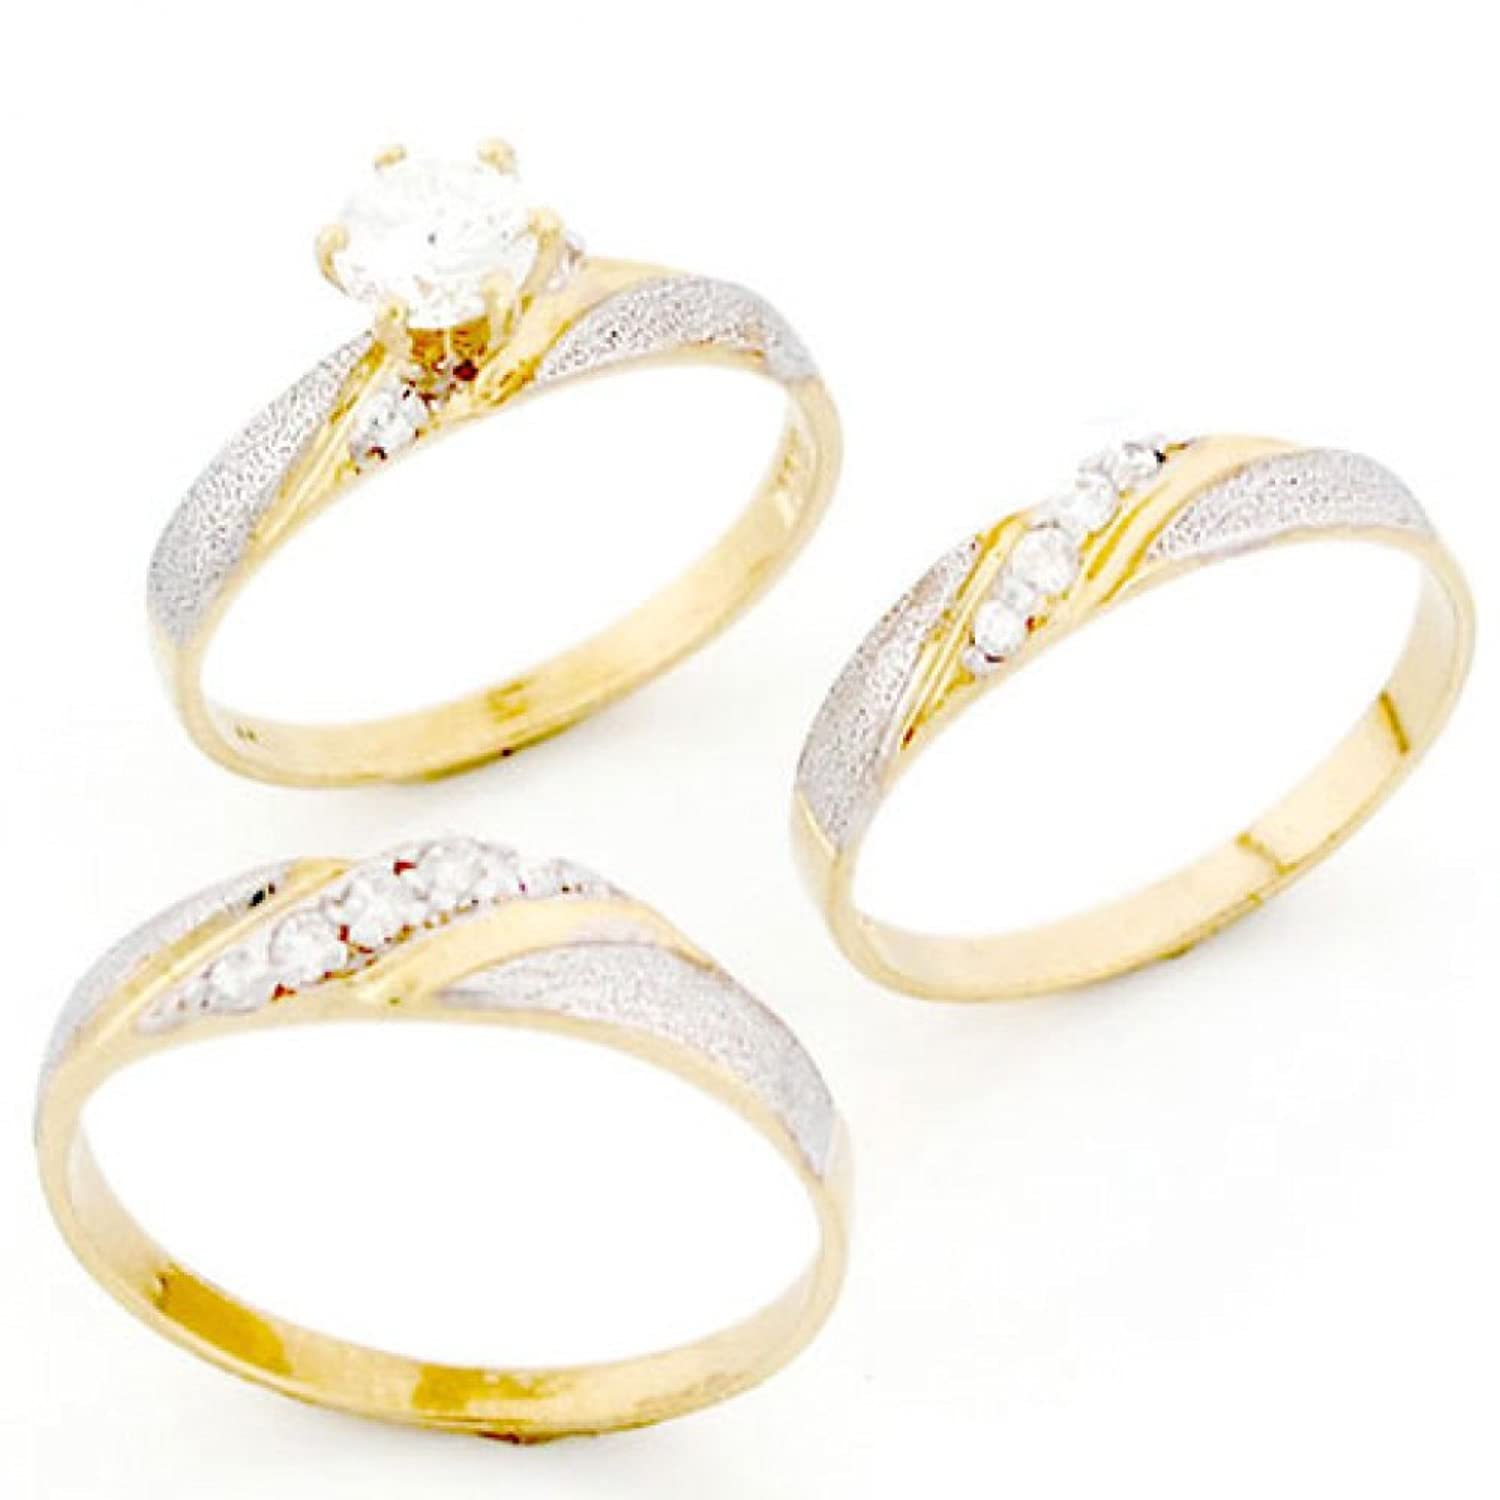 amazoncom 10k two tone gold his hers trio cz wedding ring sets jewelry - Gold Wedding Ring Sets